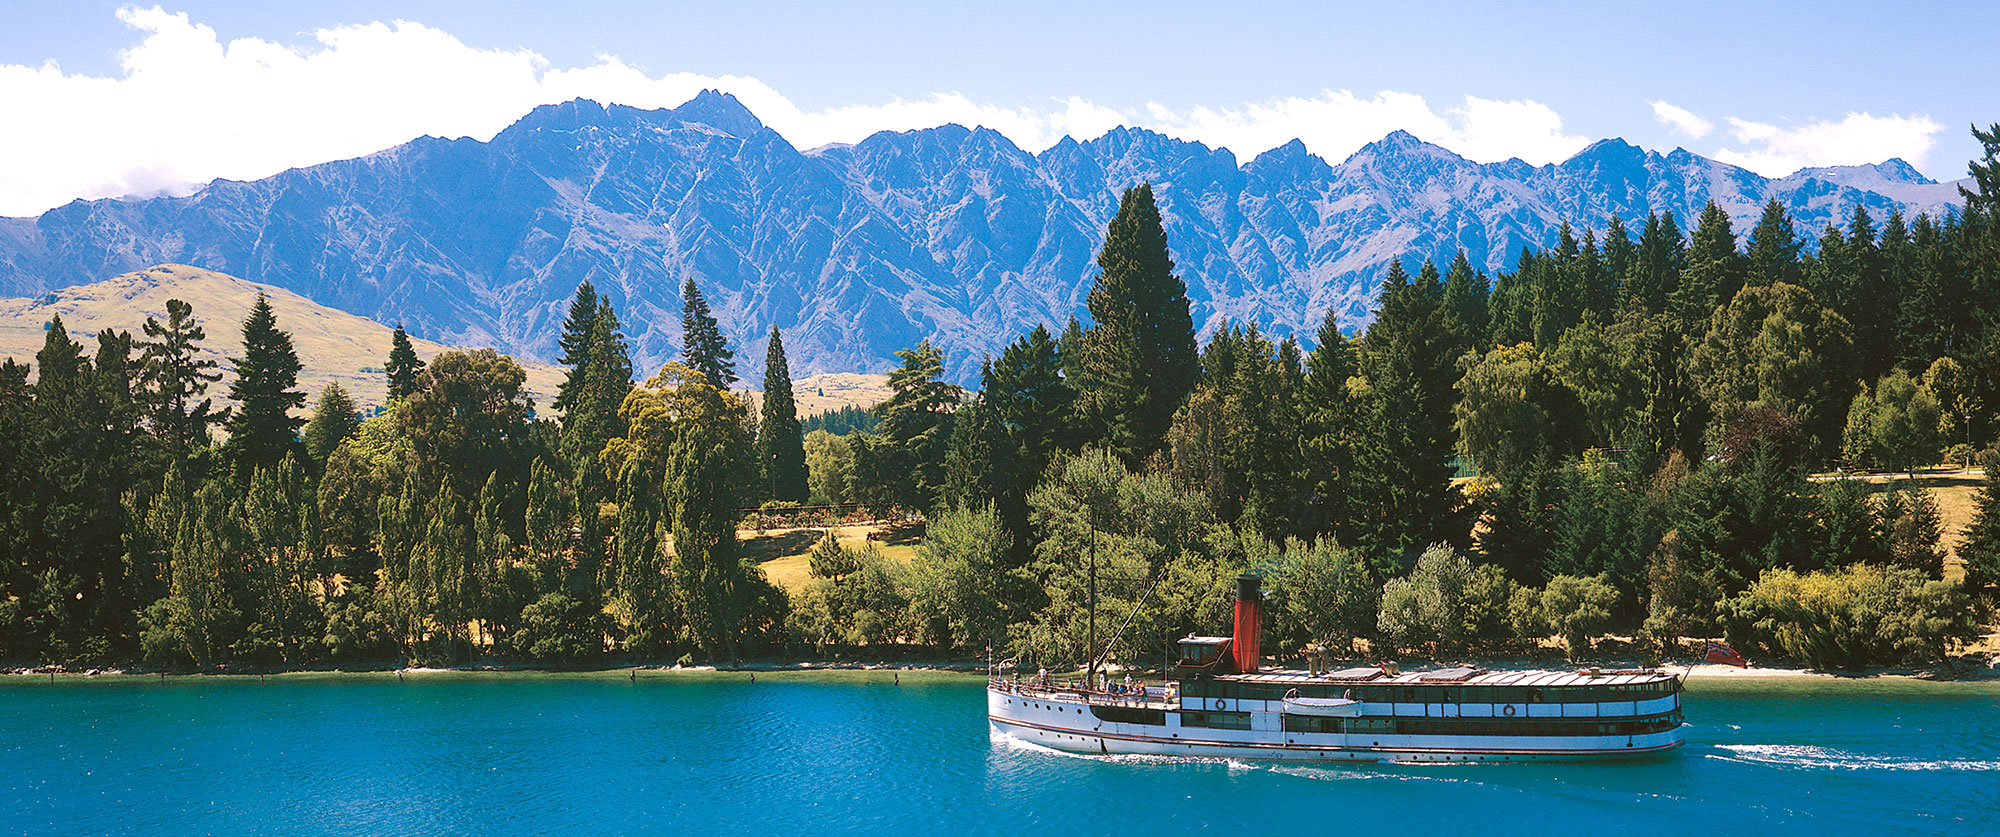 New Zealand Family Vacation - Queenstown